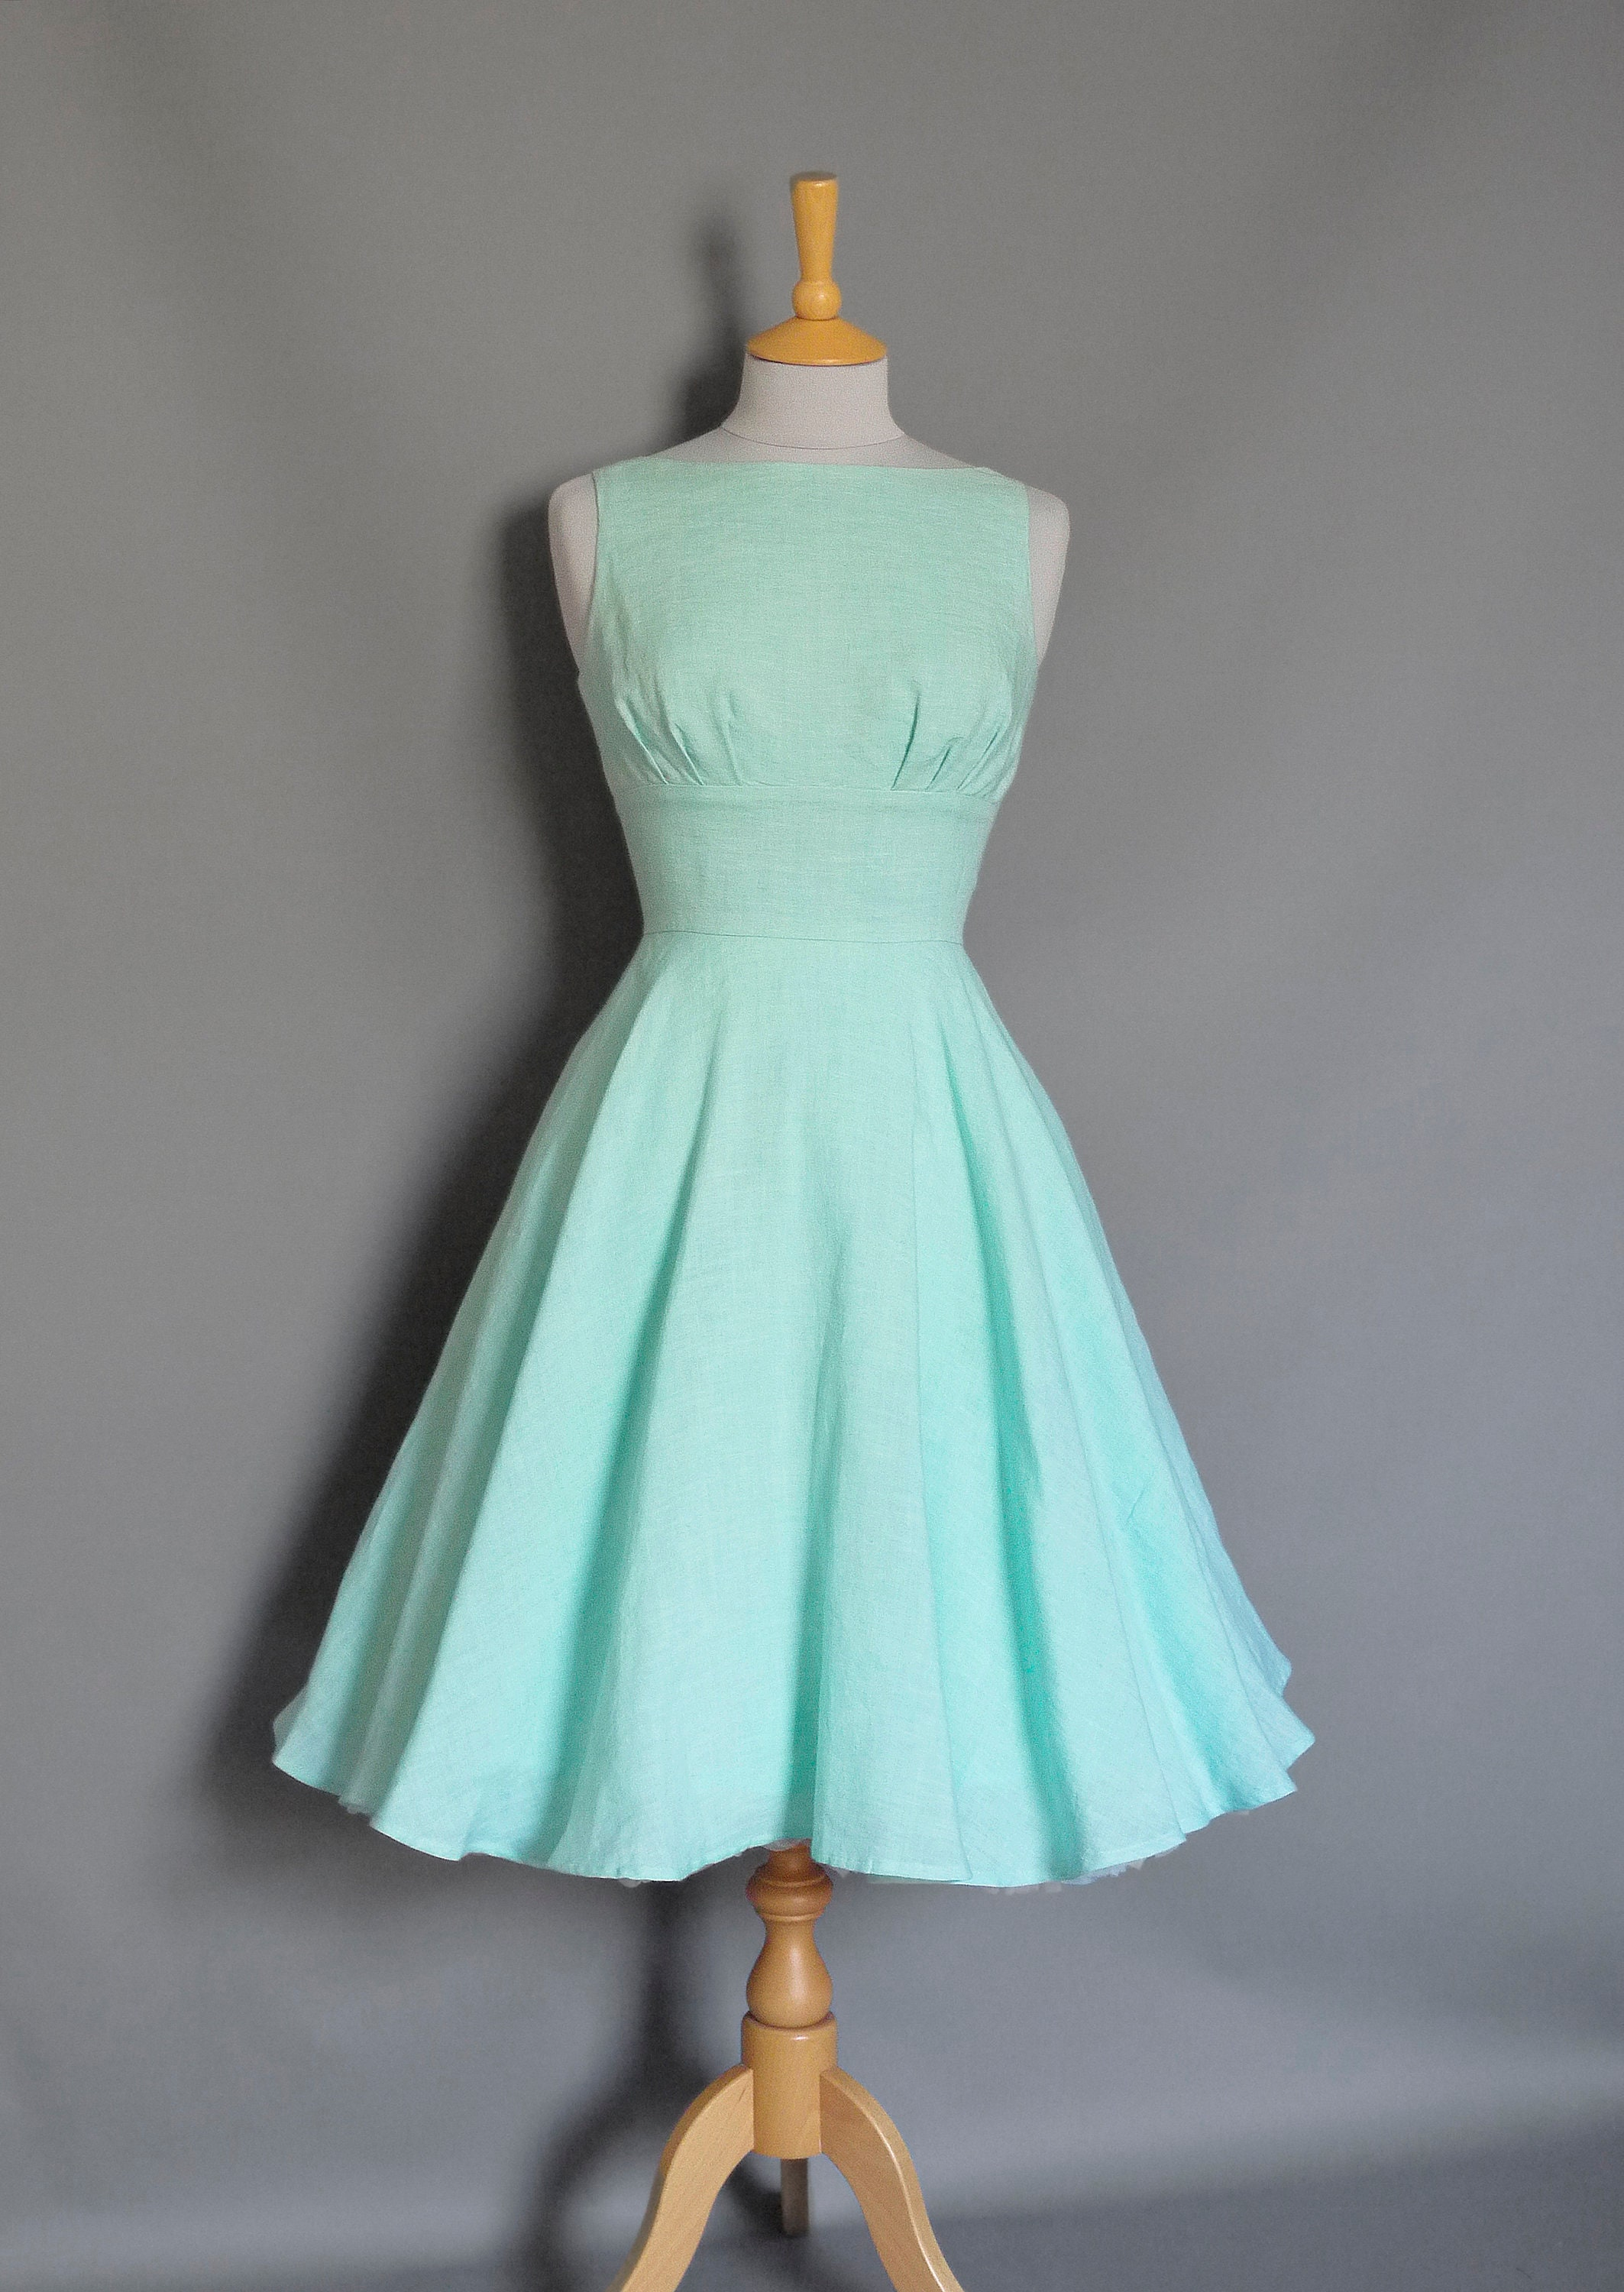 9cc5f84d7bbb4 Peppermint Green Linen Tiffany Swing Dress Full Circle Skirt- Made by Dig  For Victory